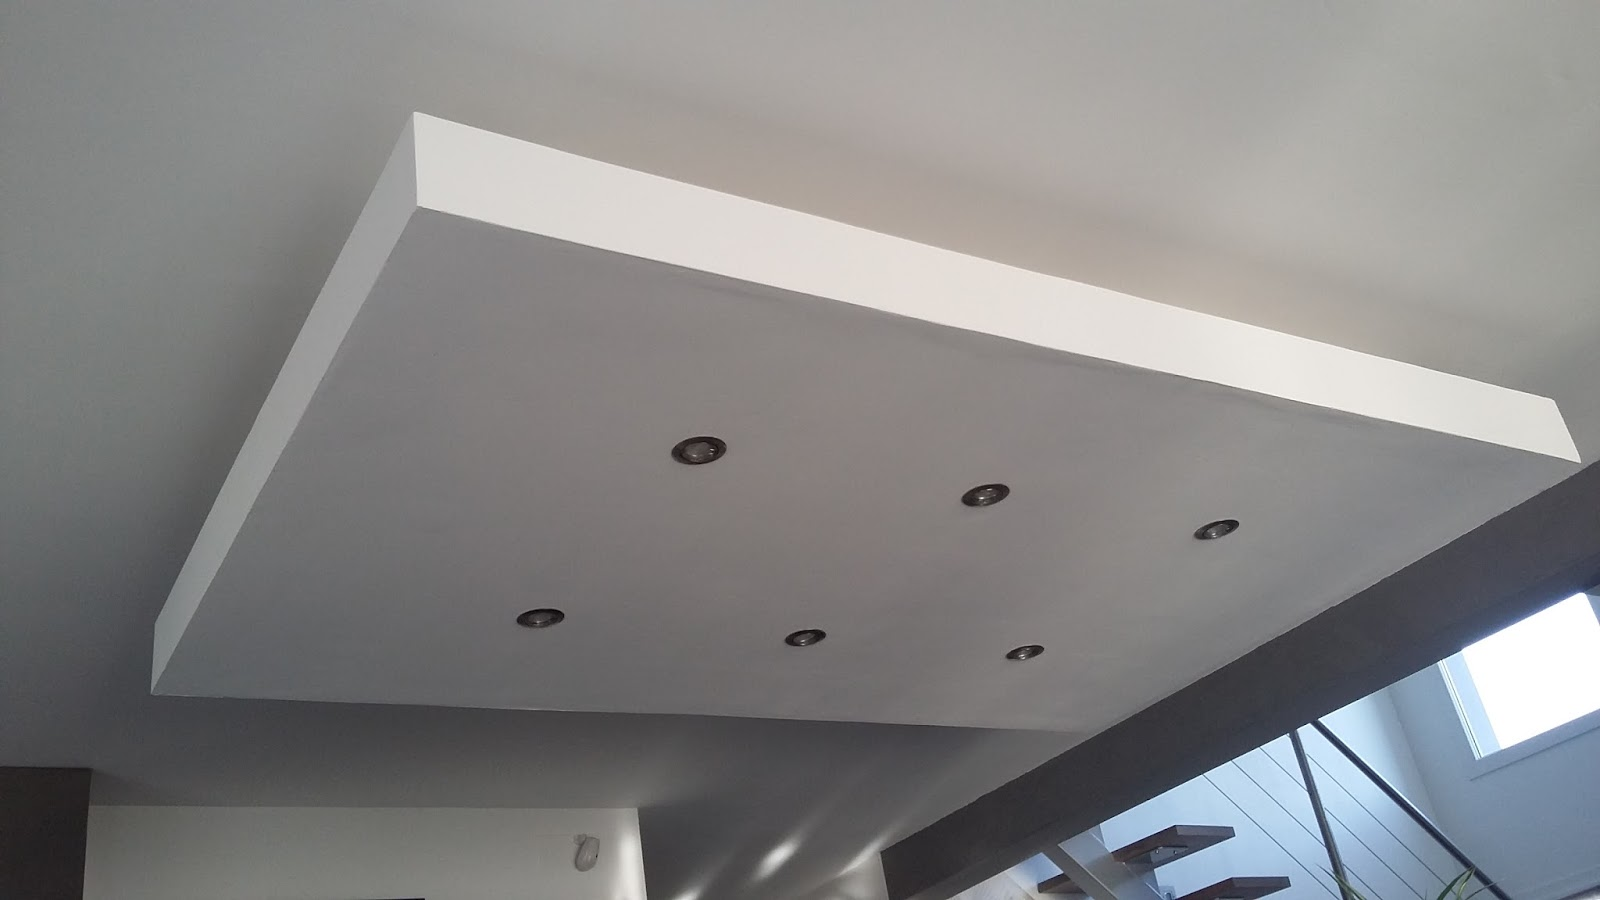 Bricolage de l 39 id e la r alisation plafond descendu for Faire un faux plafond en ba13